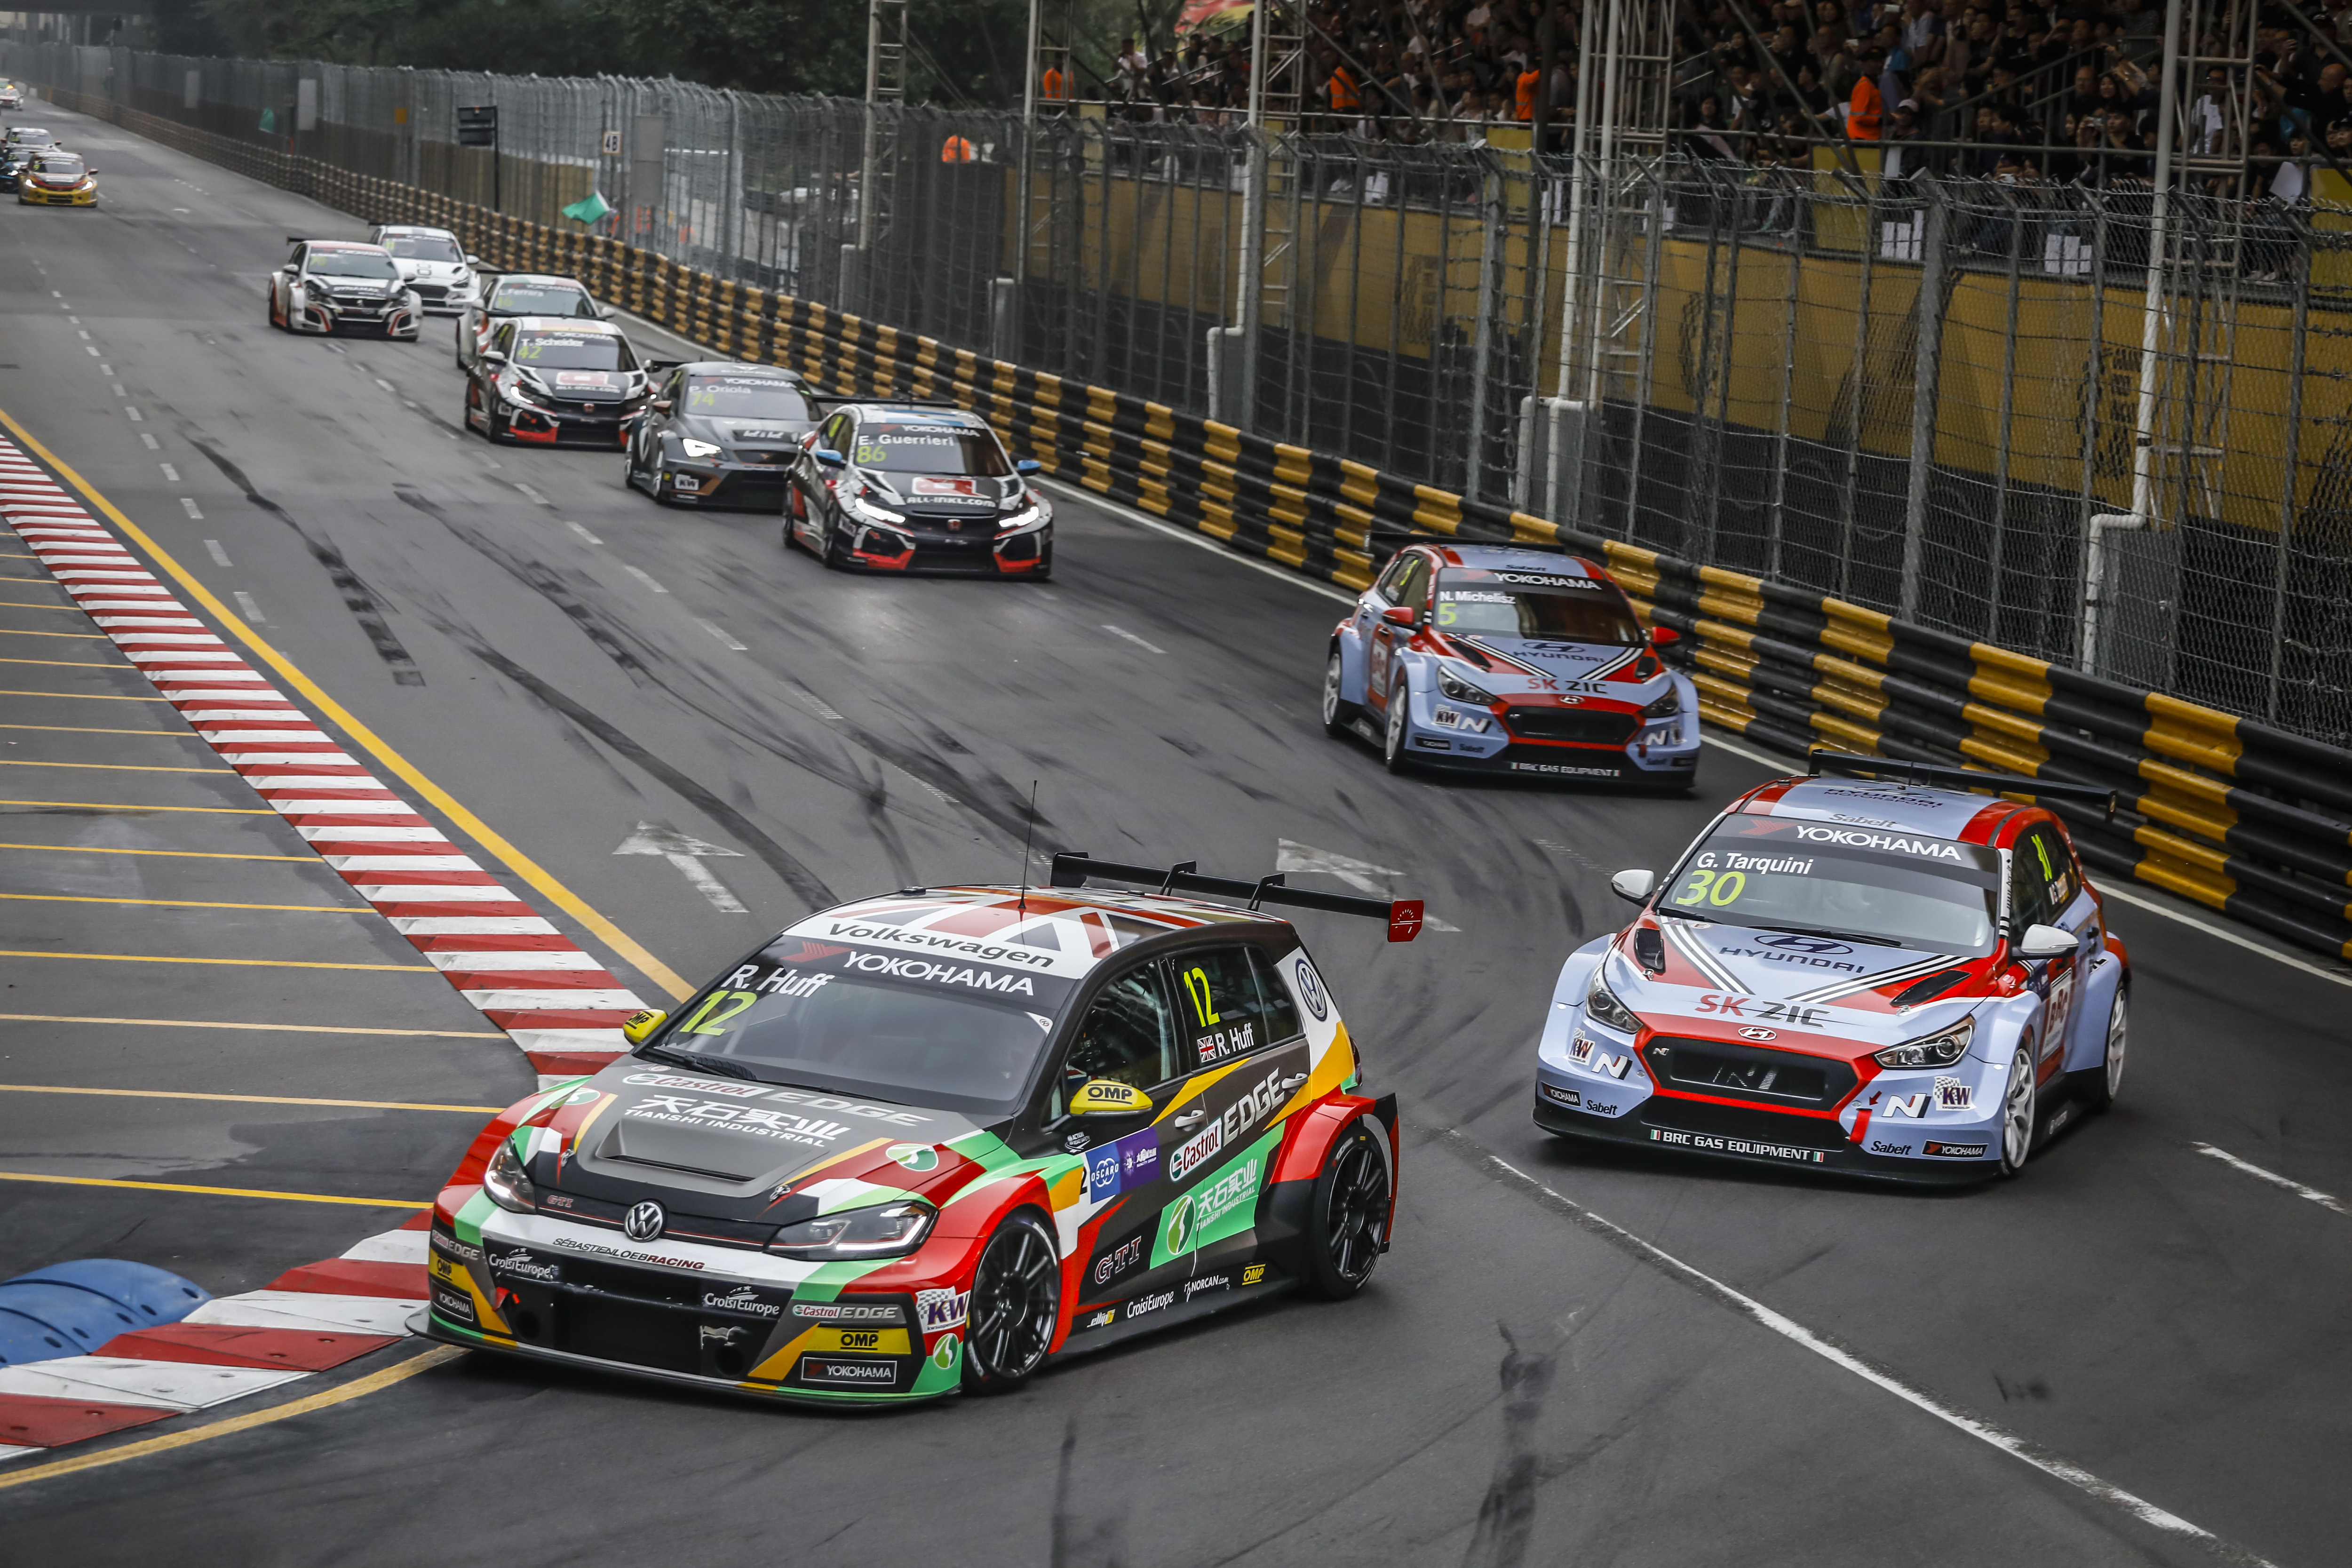 Huff lands TAG Heuer Best Lap Trophy at Macau WTCR finale